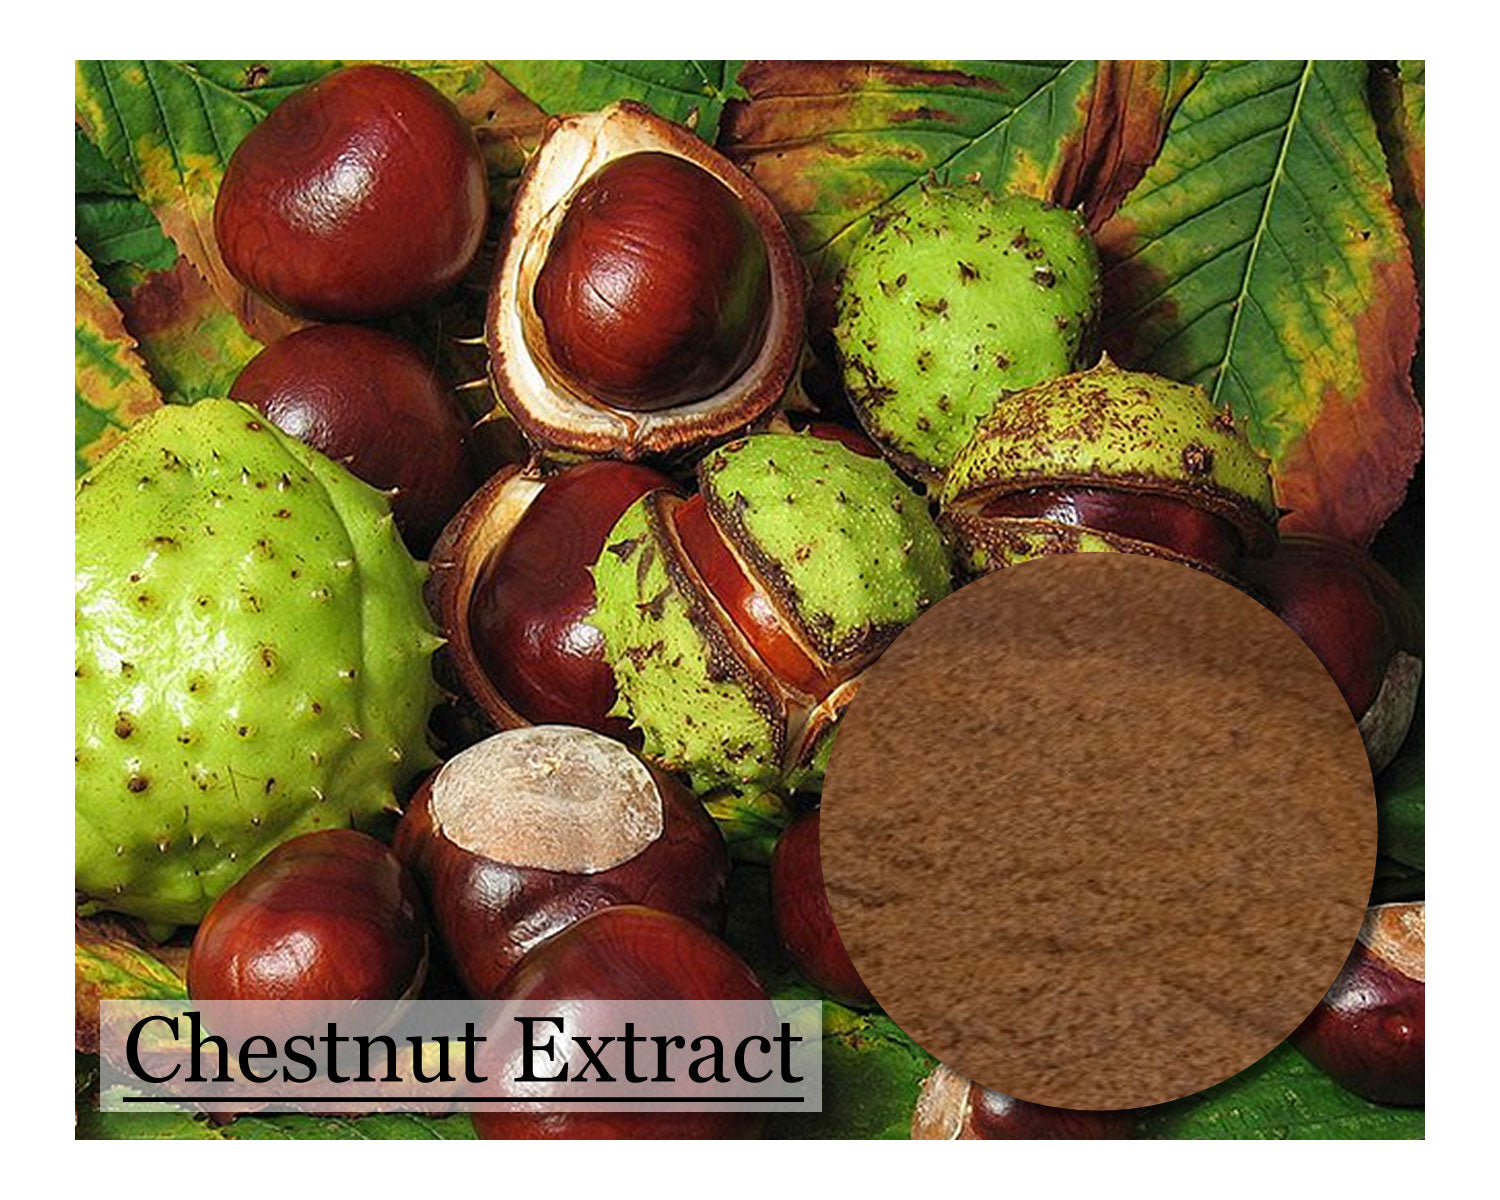 Chestnut Extract 4oz